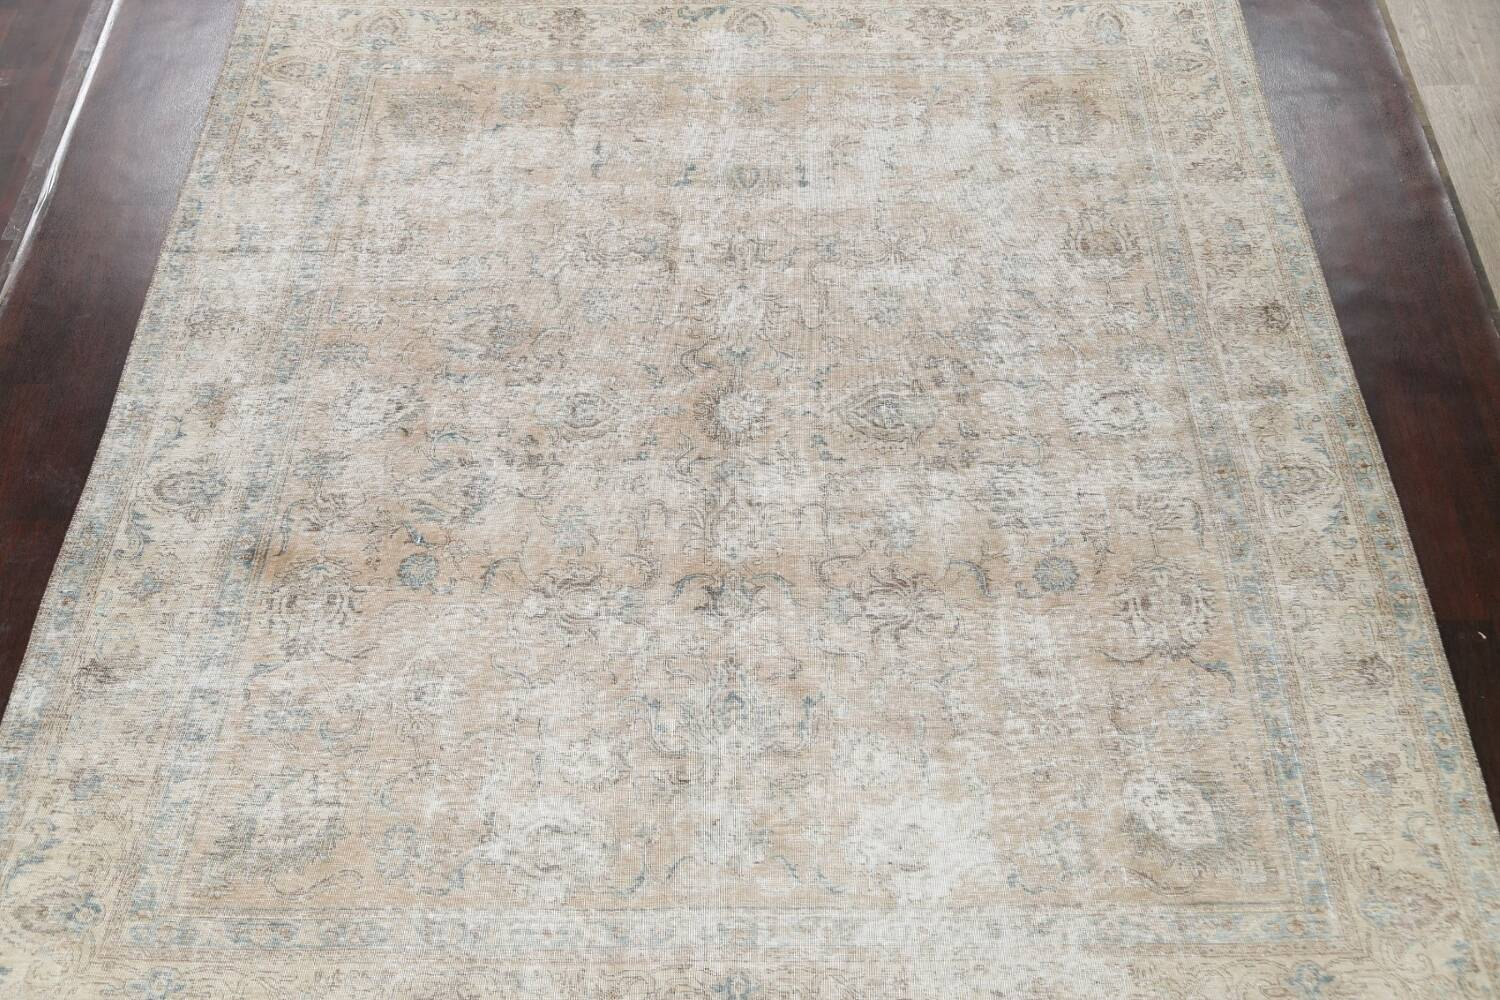 Muted Floral Tabriz Persian Area Rug 10x11 image 3